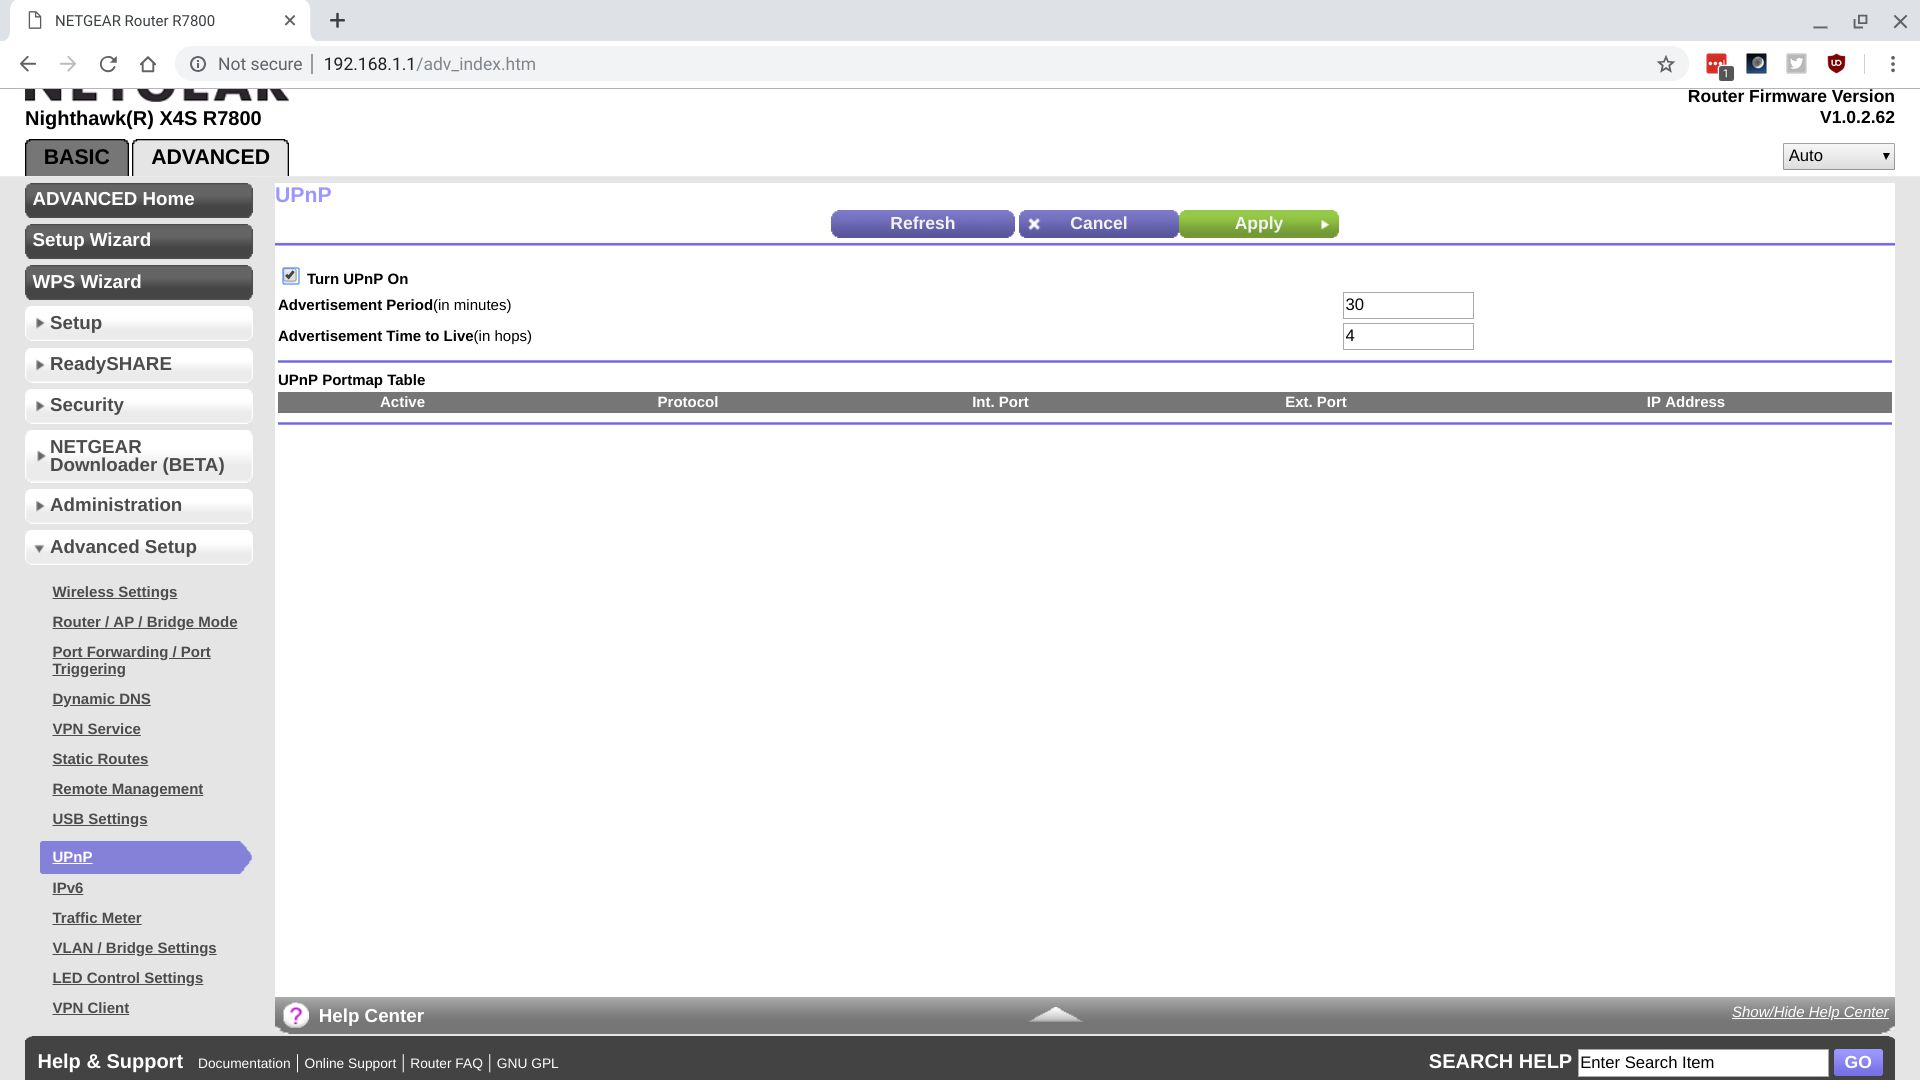 Screenshot of NetGear X4S R7800 router, with